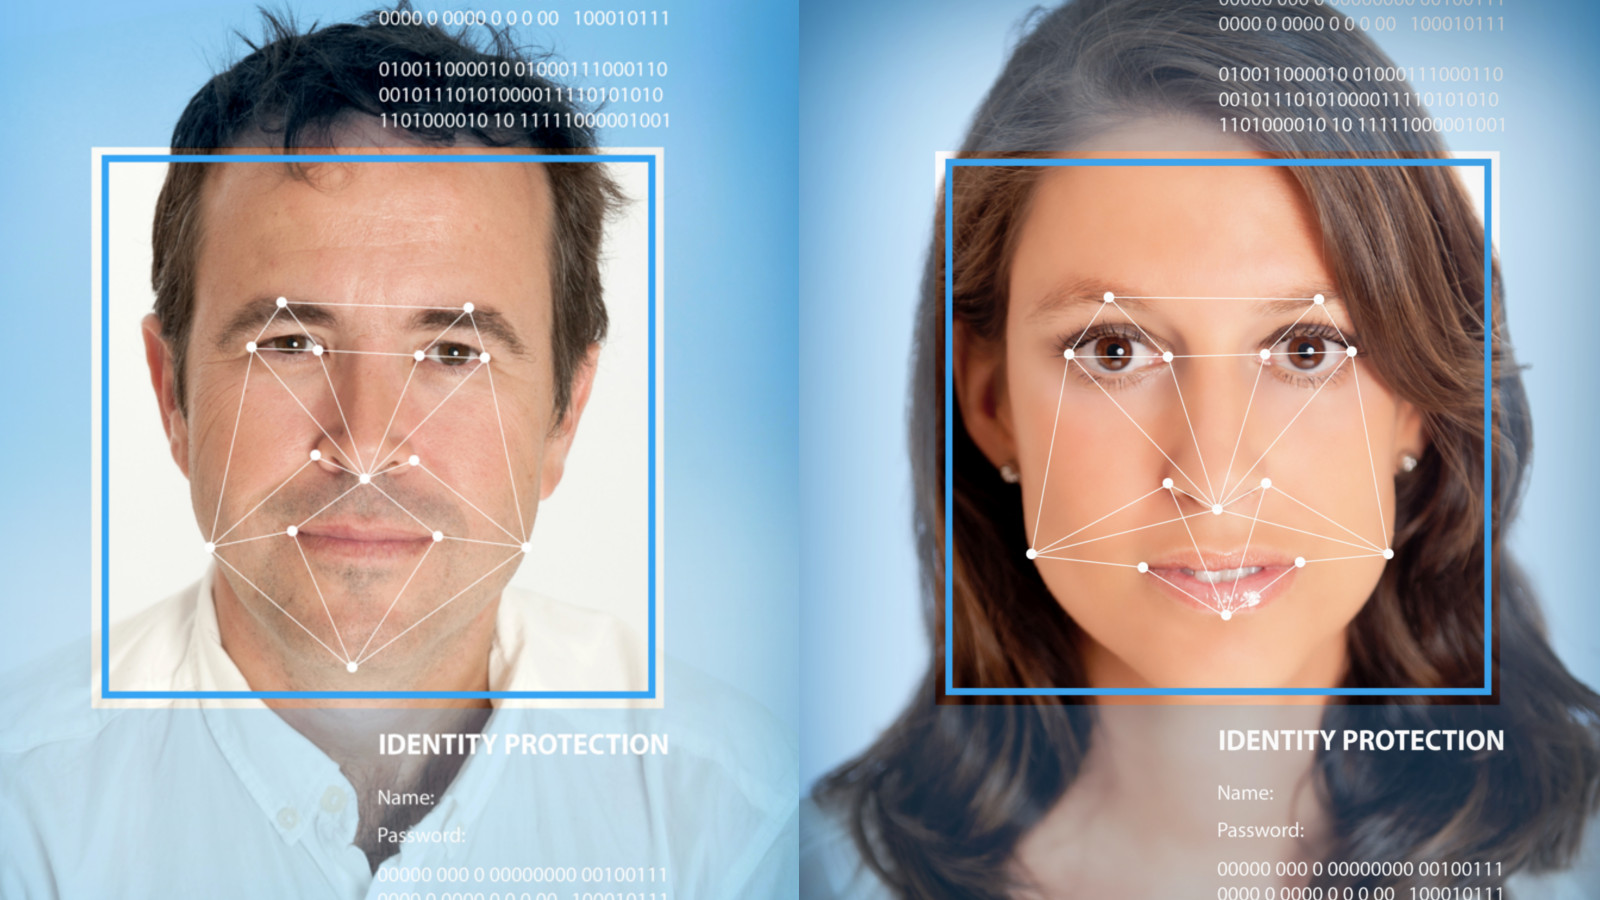 australia facial recognition passport